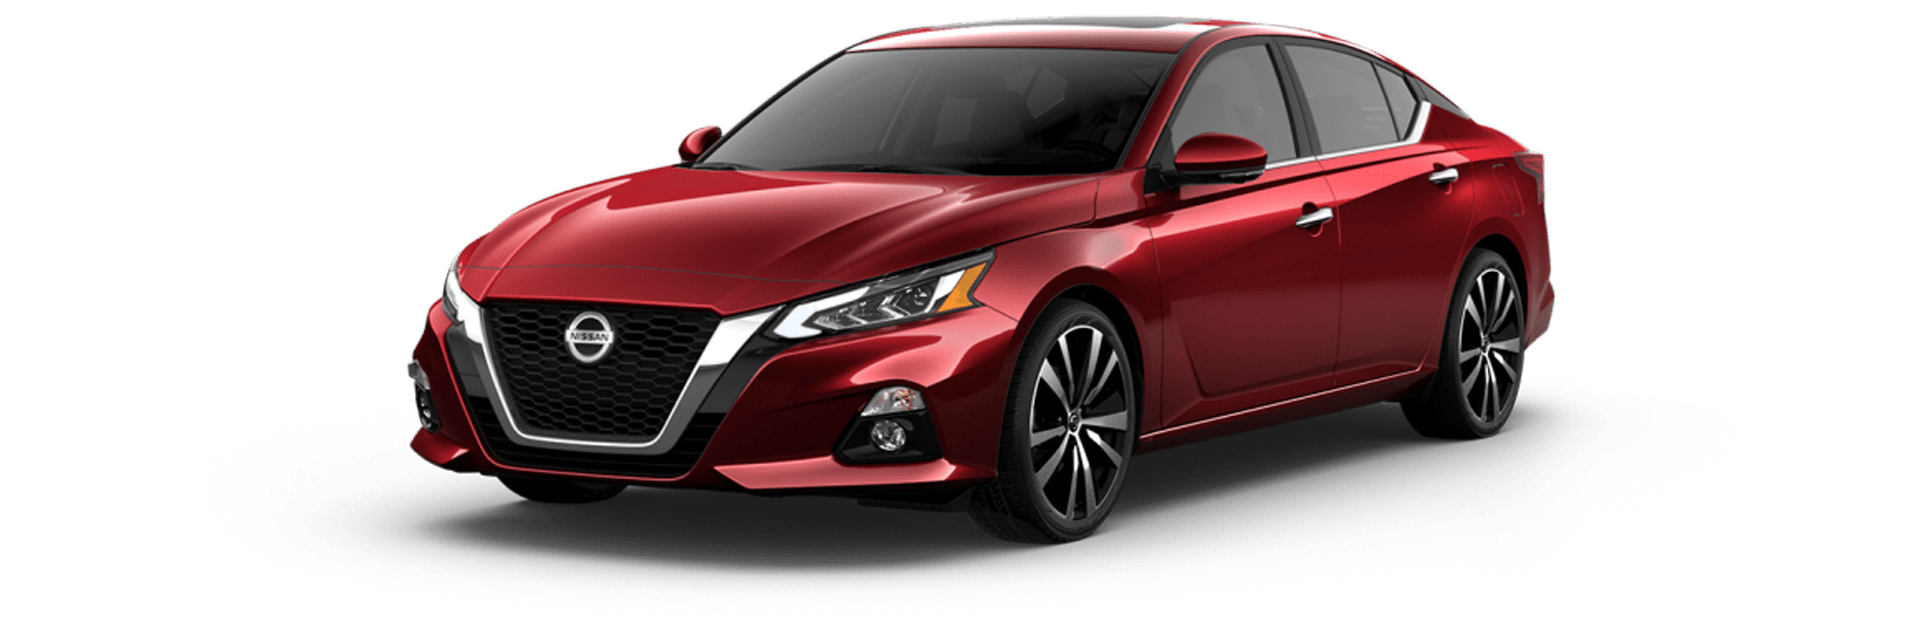 Red Nissan Altima 2019 Model car picture